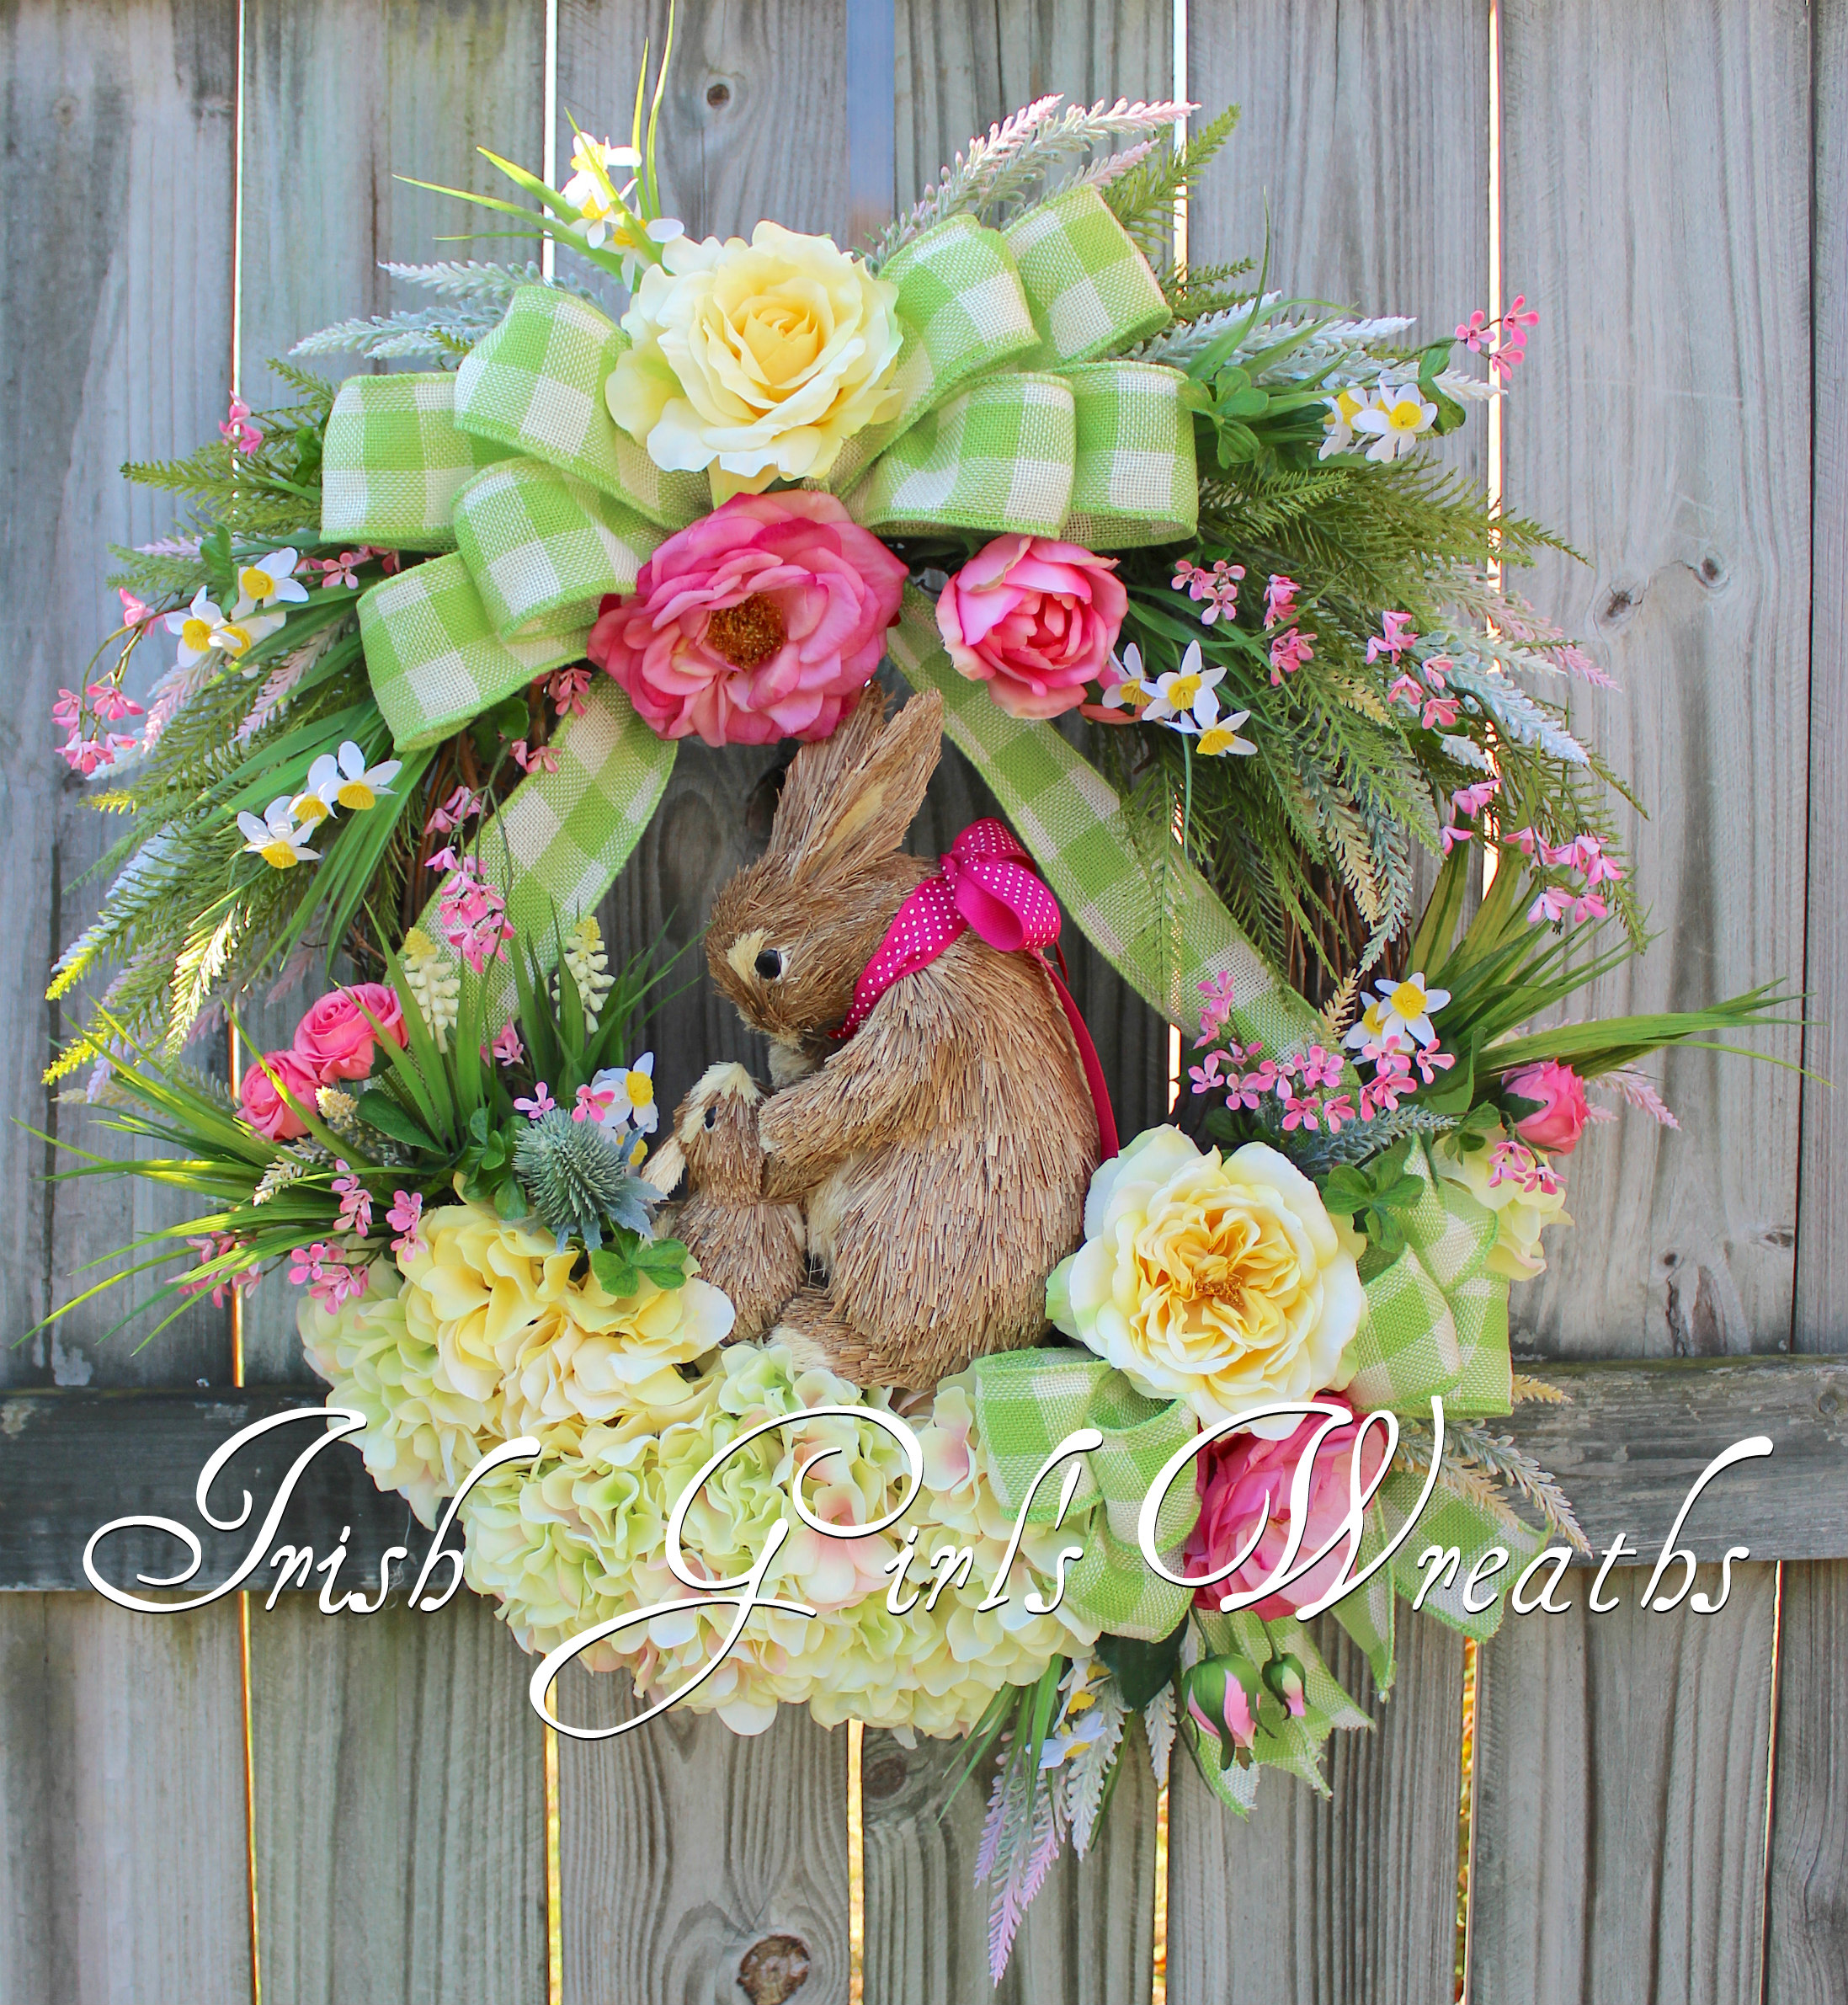 Irish girls wreaths where the difference is in the details pink pink yellow rose bunny rabbits spring floral wreath mightylinksfo